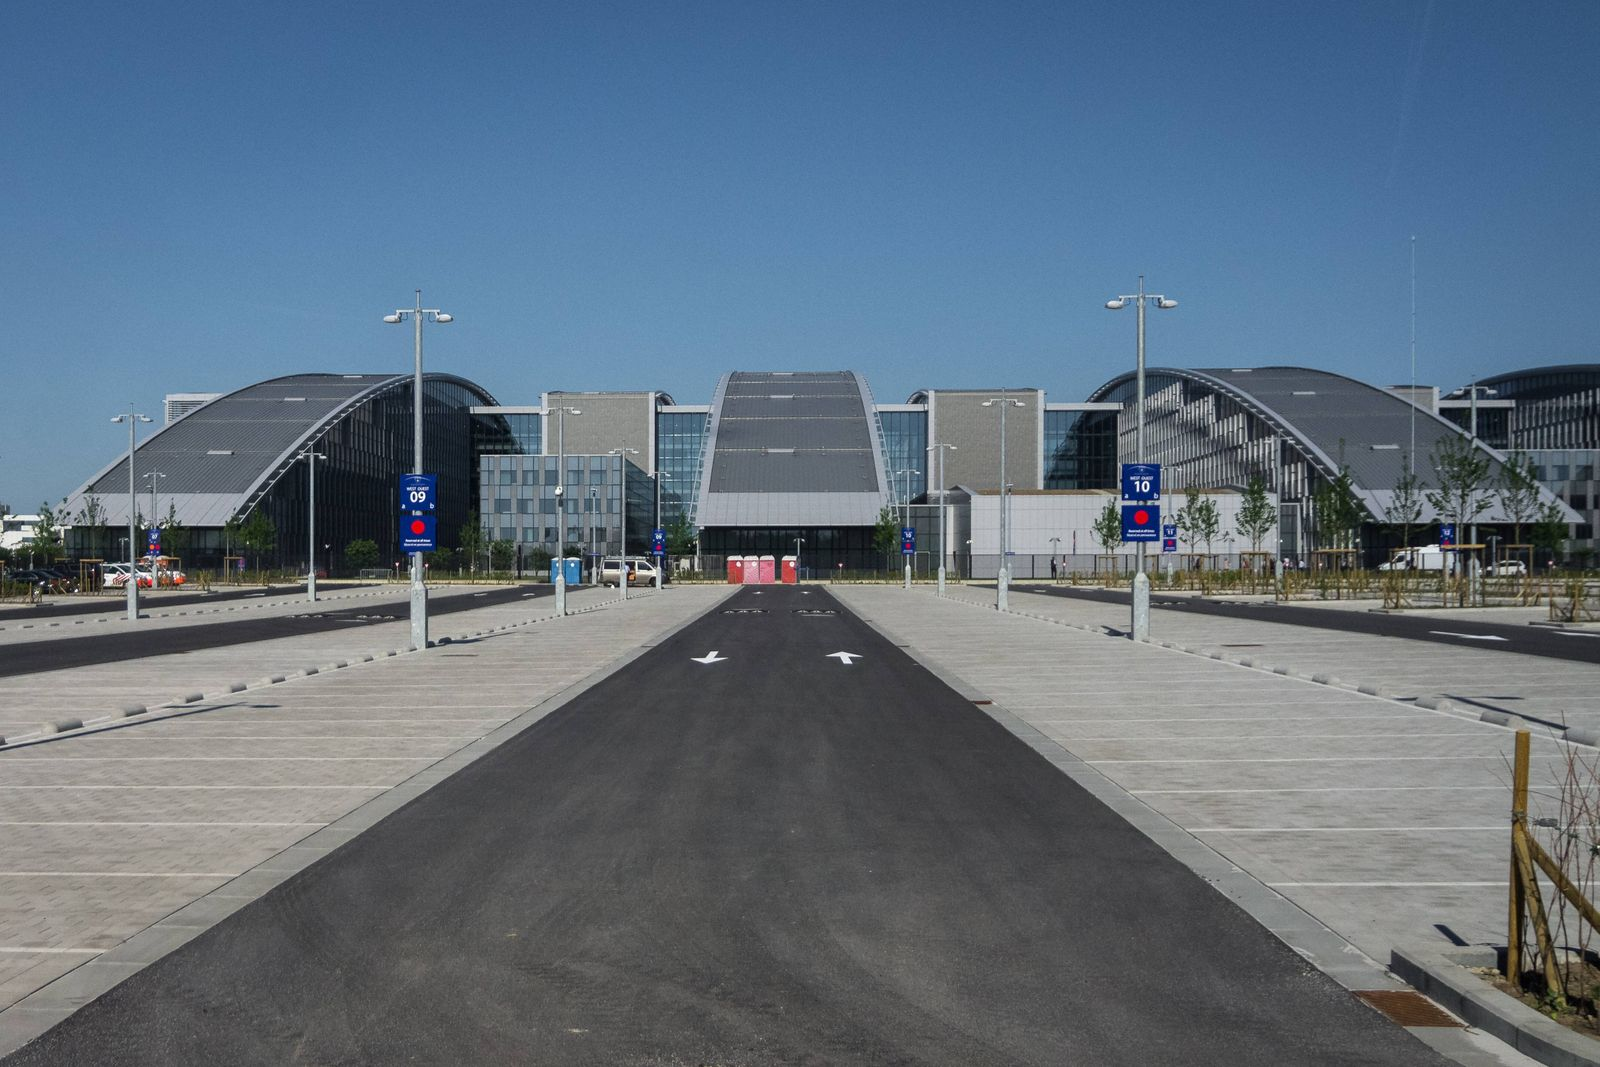 New Nato Headquarters in Bruxelles 25 05 2017 Belgium Brussels Visit of the New Nato Head